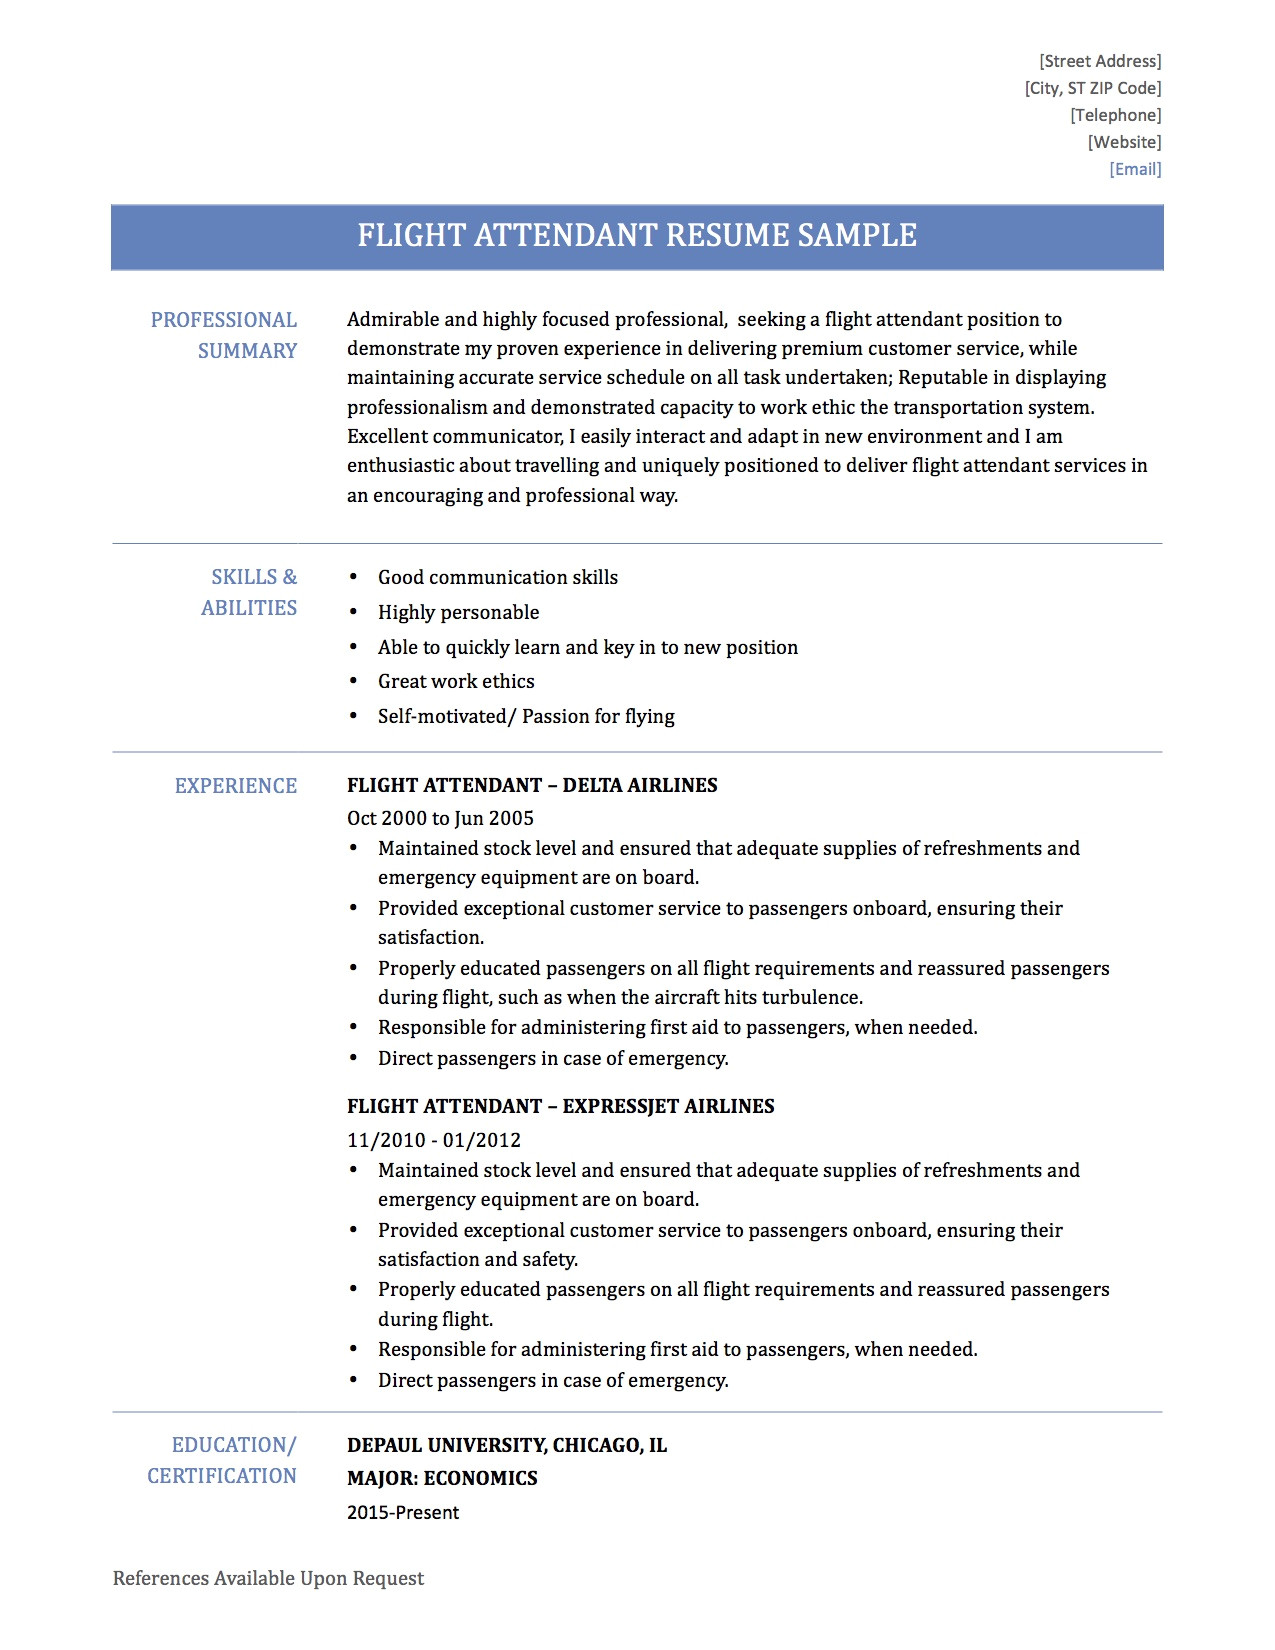 flight attendant sample resume tips templates for cabin crew with no experience attendent resume